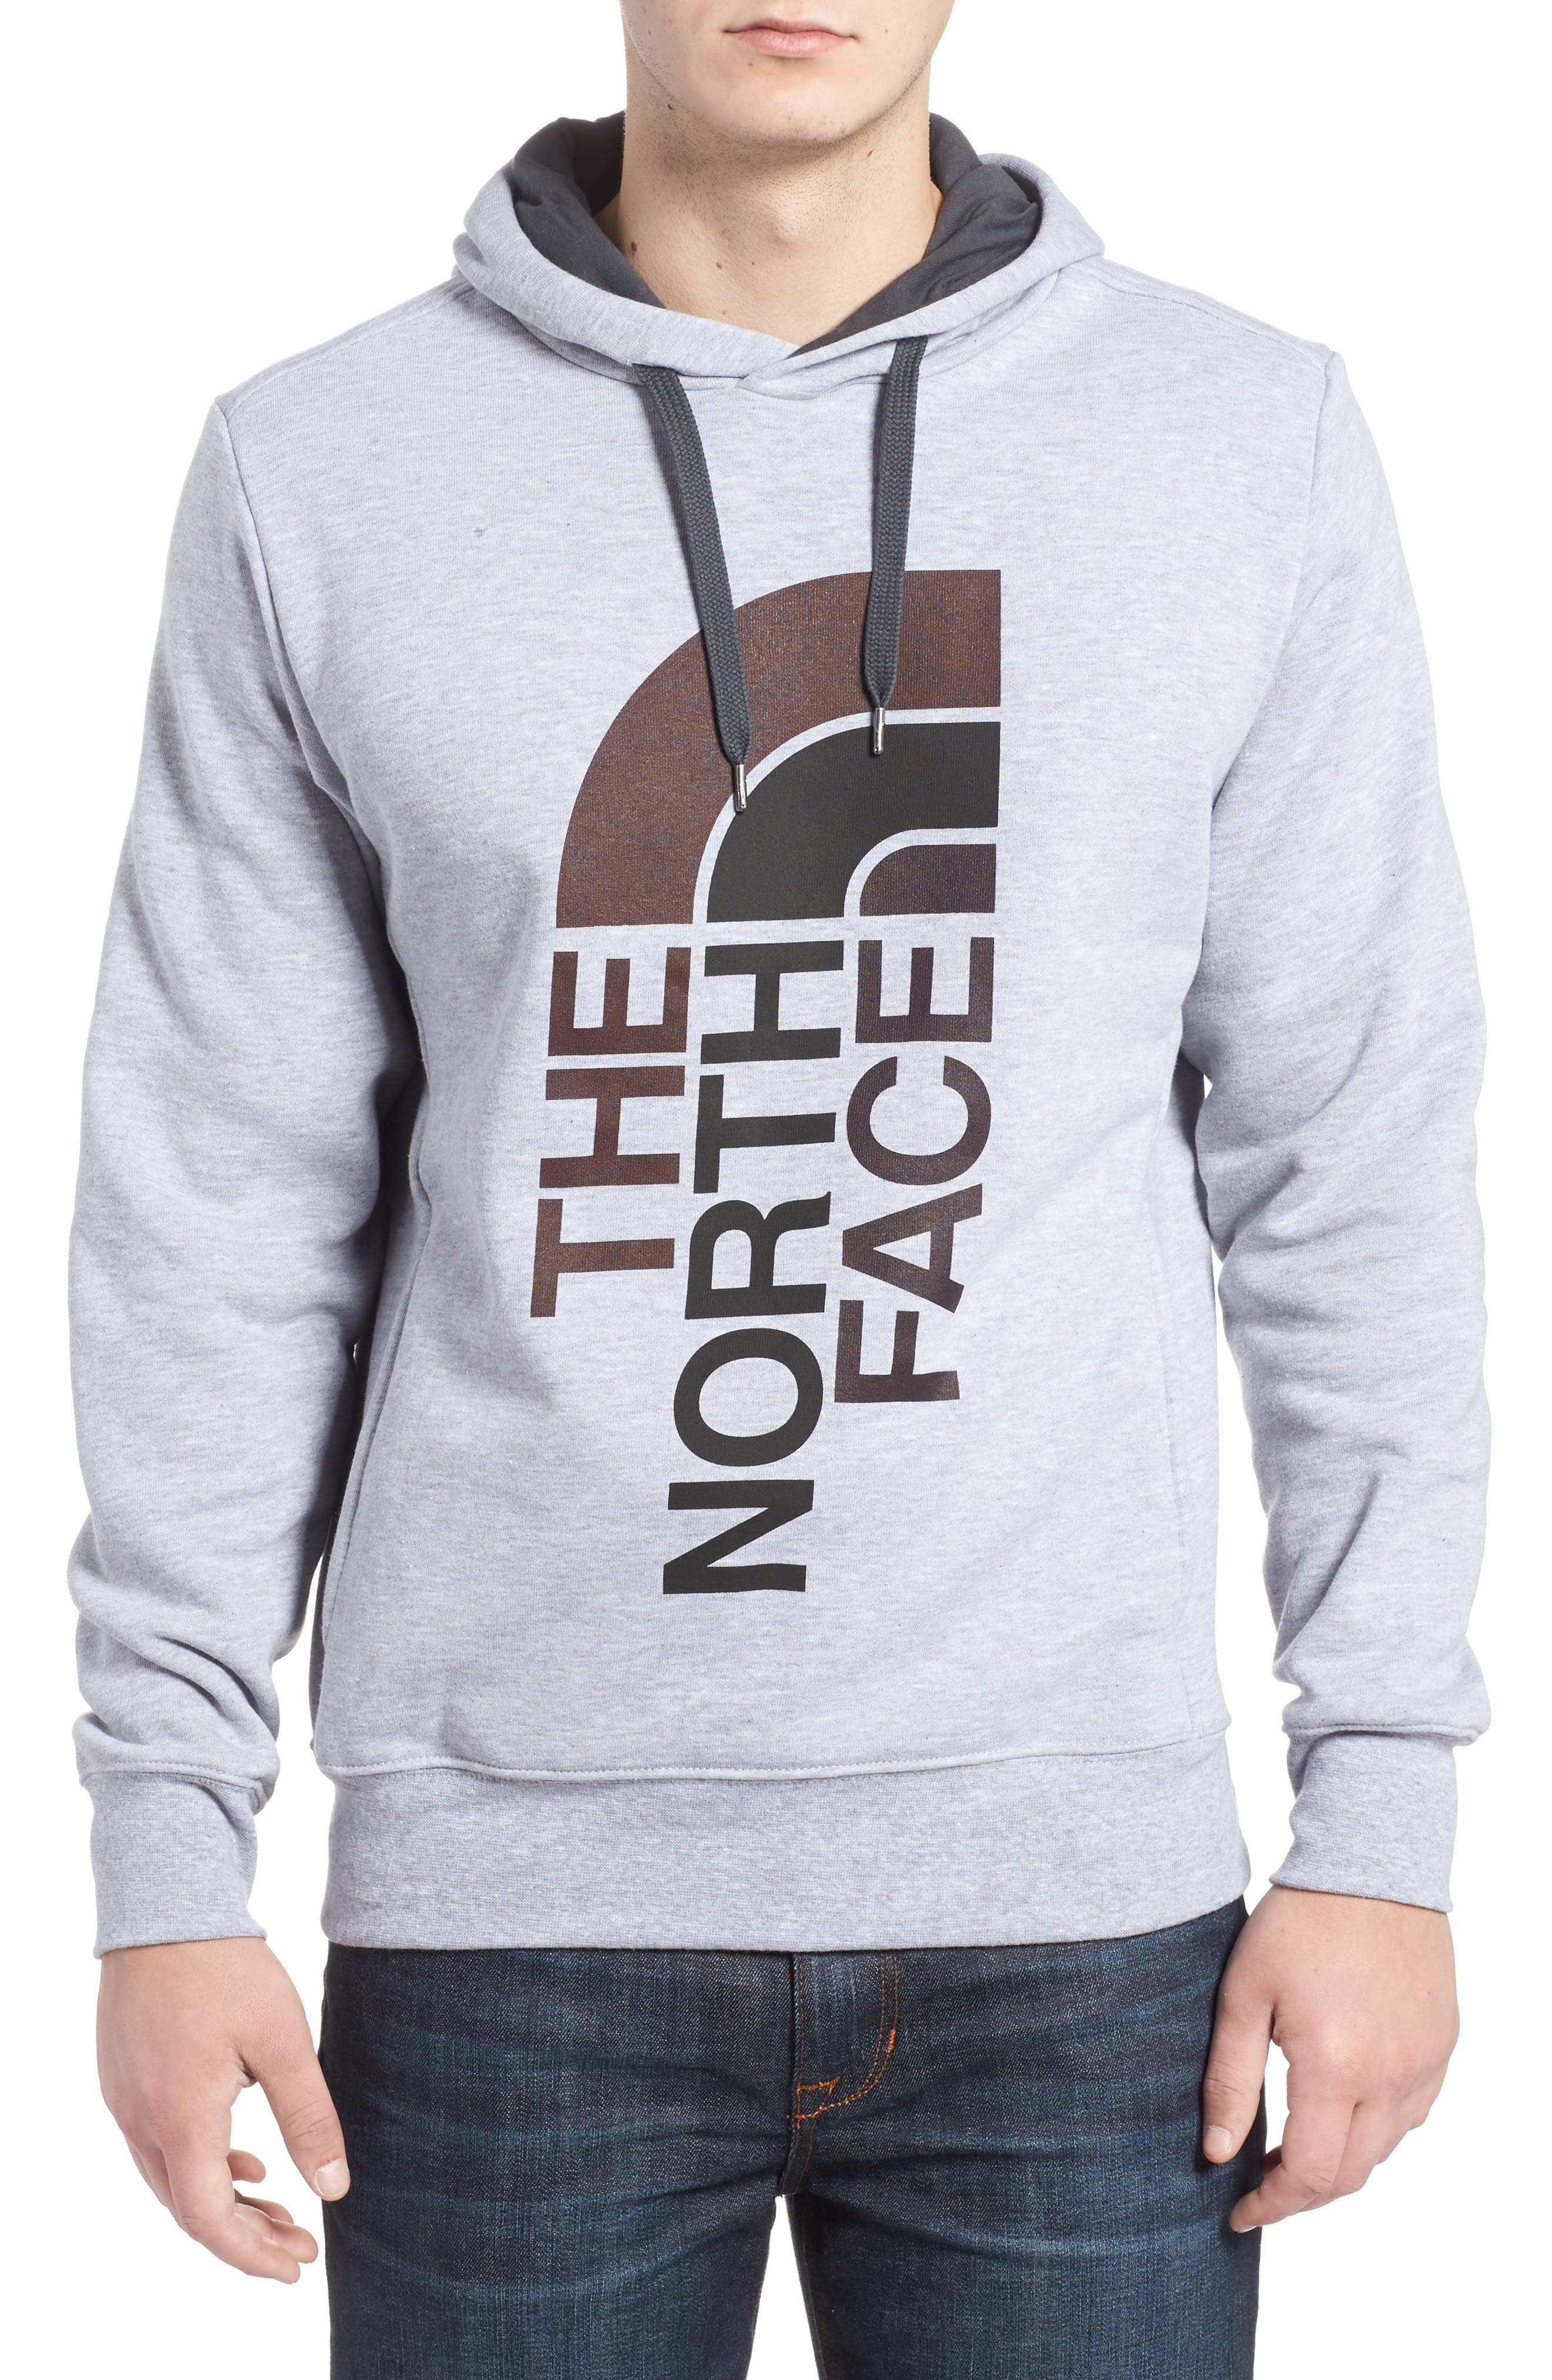 Trivert Cotton Blend Hoodie,                         Main,                         color, Light Grey/ Asphalt Grey Multi